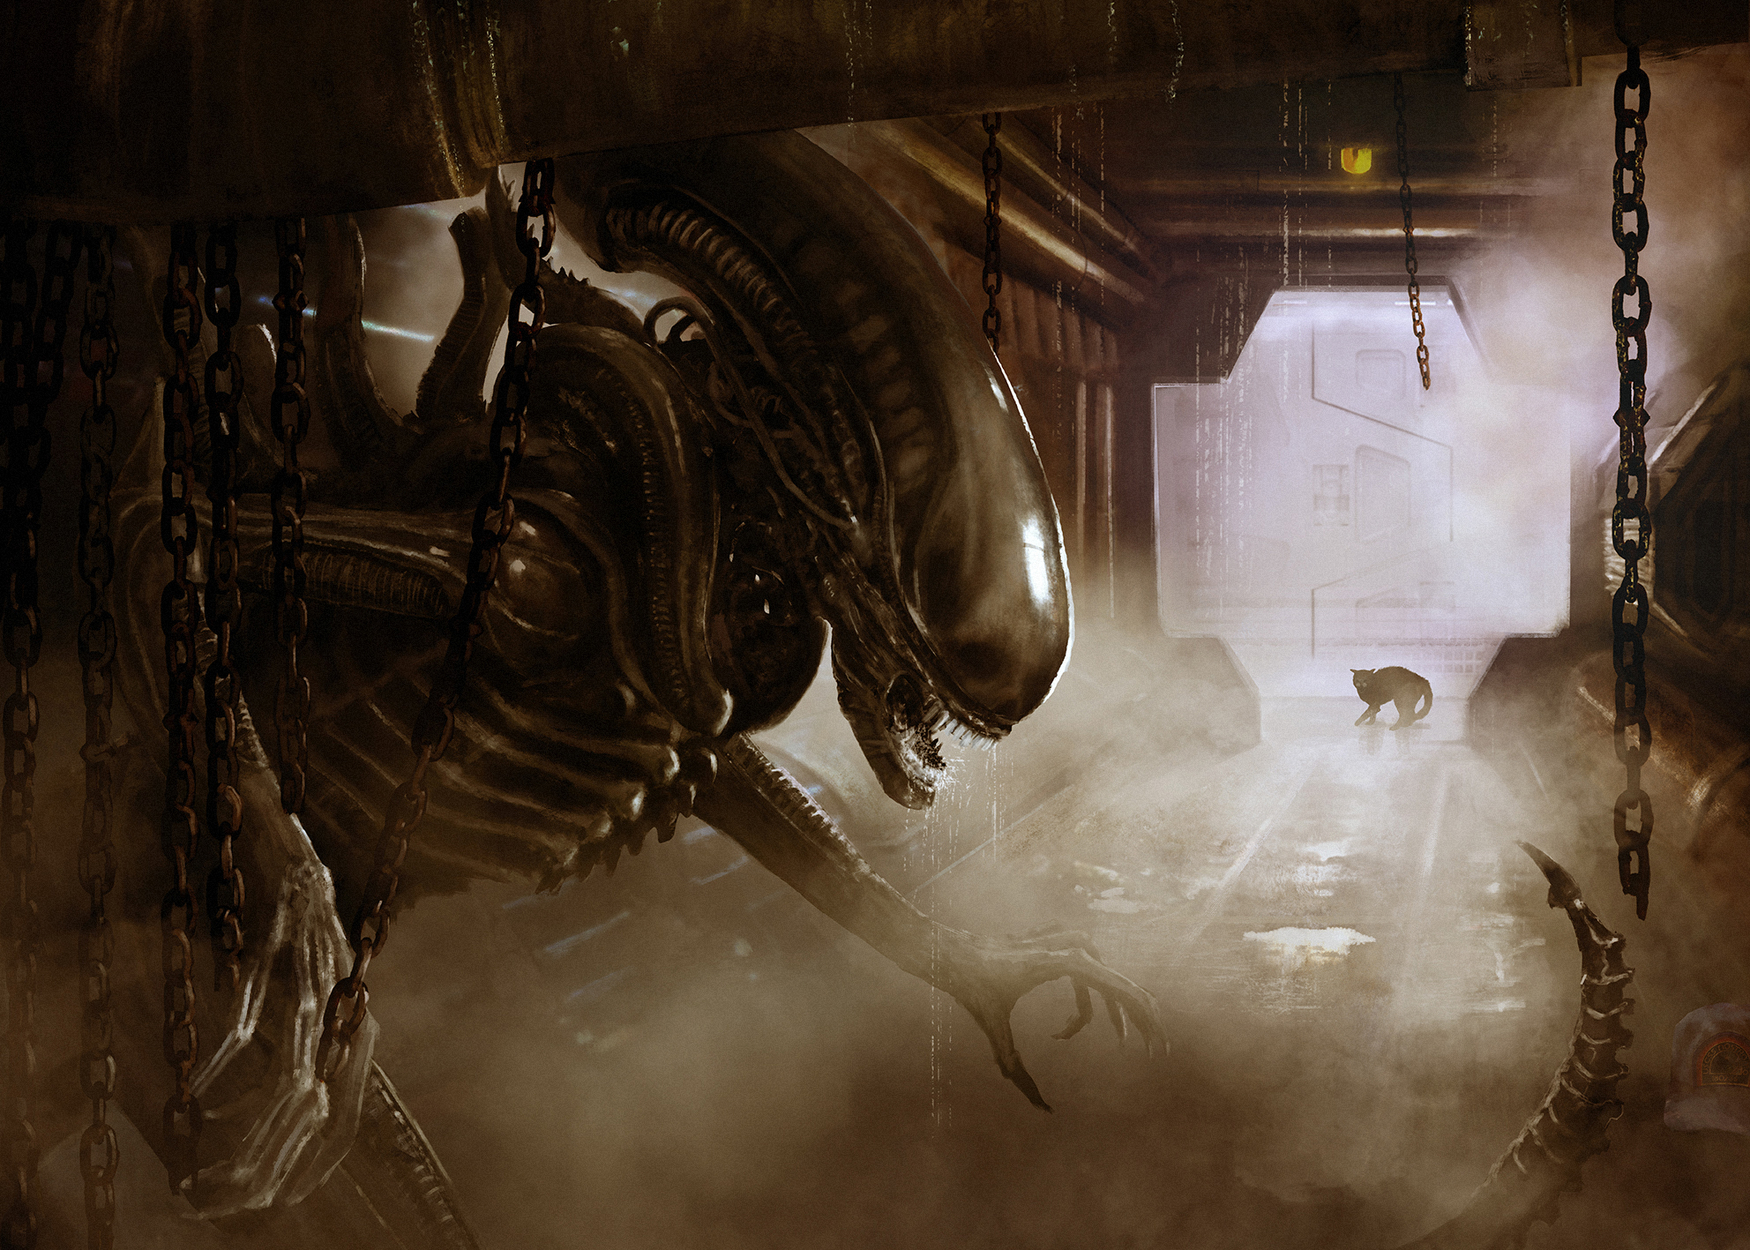 Big Chap Alien Artwork by Camille Alquier